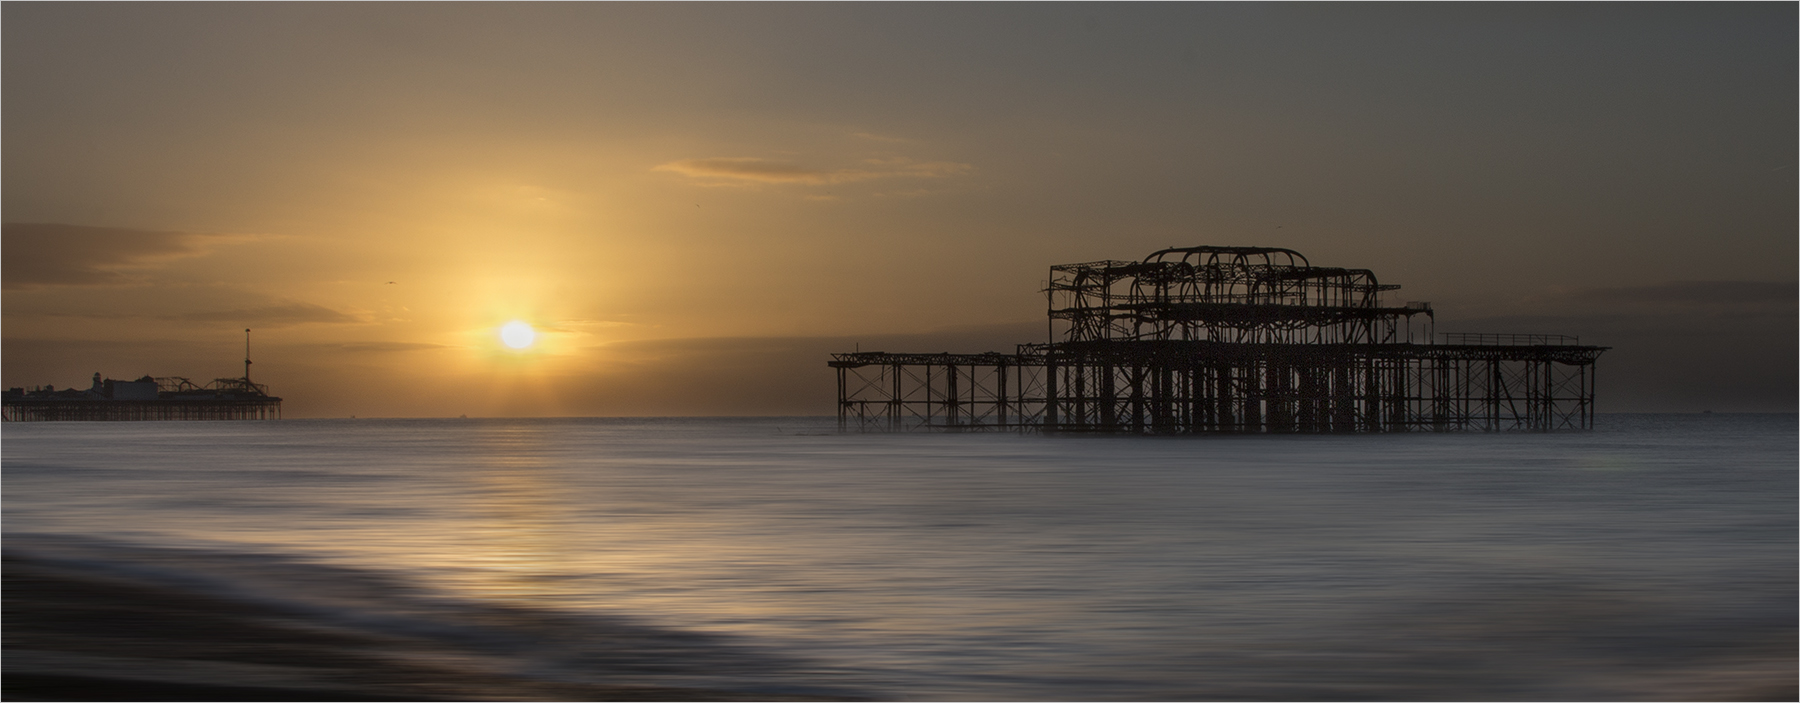 Brighton Pier by Ian Brash